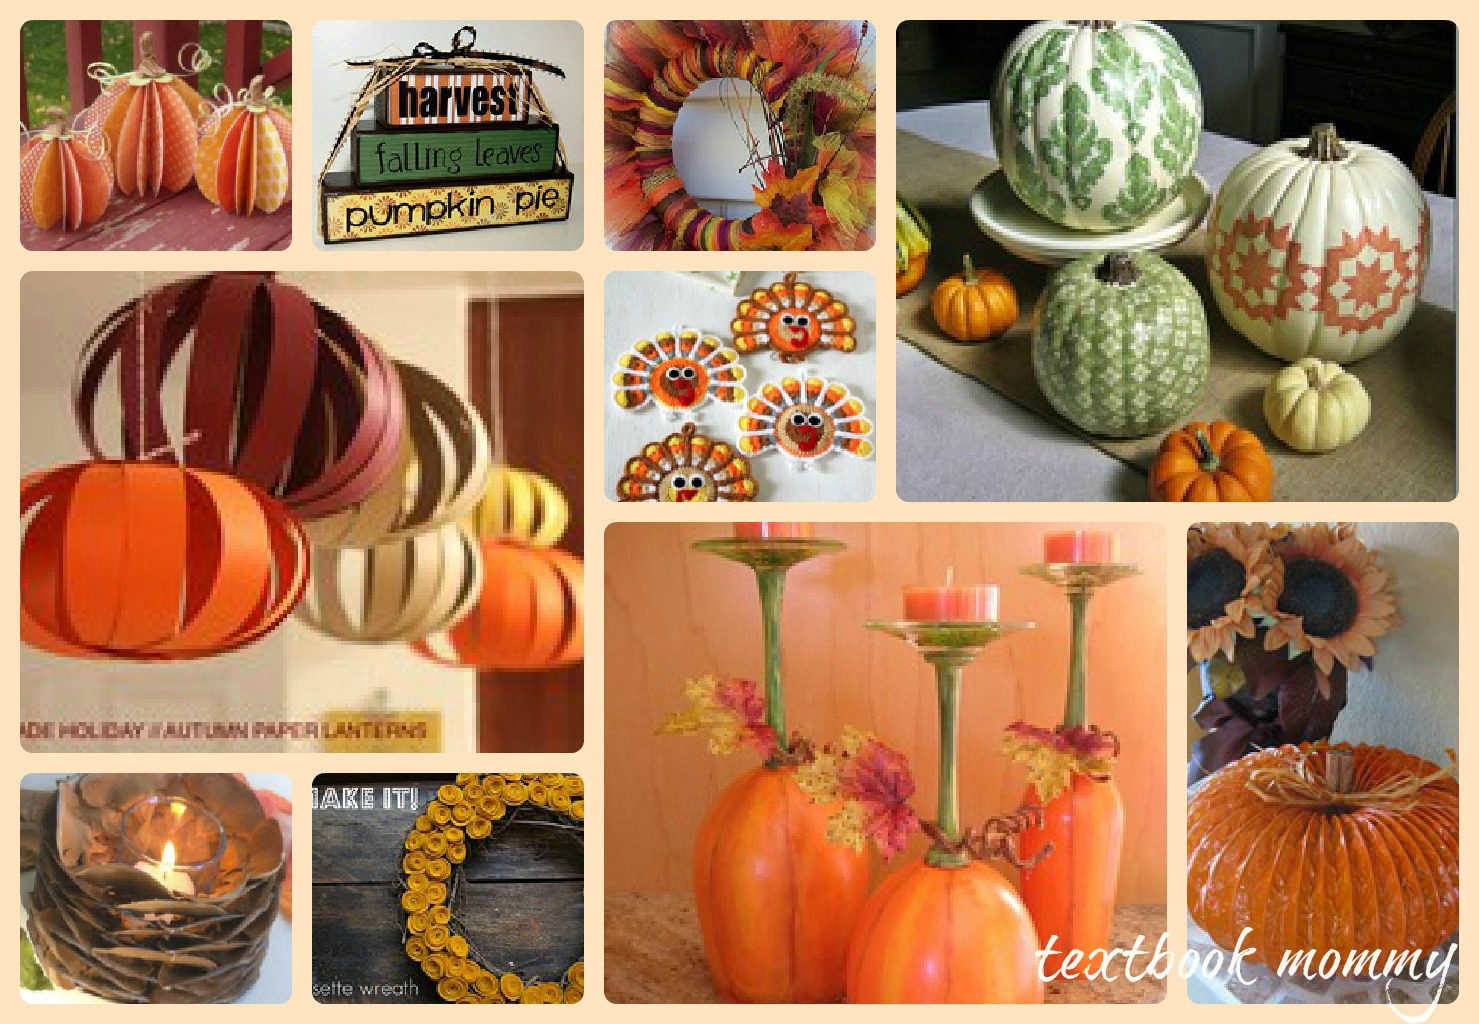 Textbook mommy 10 fantastic thanksgiving home decor crafts How to decorate your house for thanksgiving